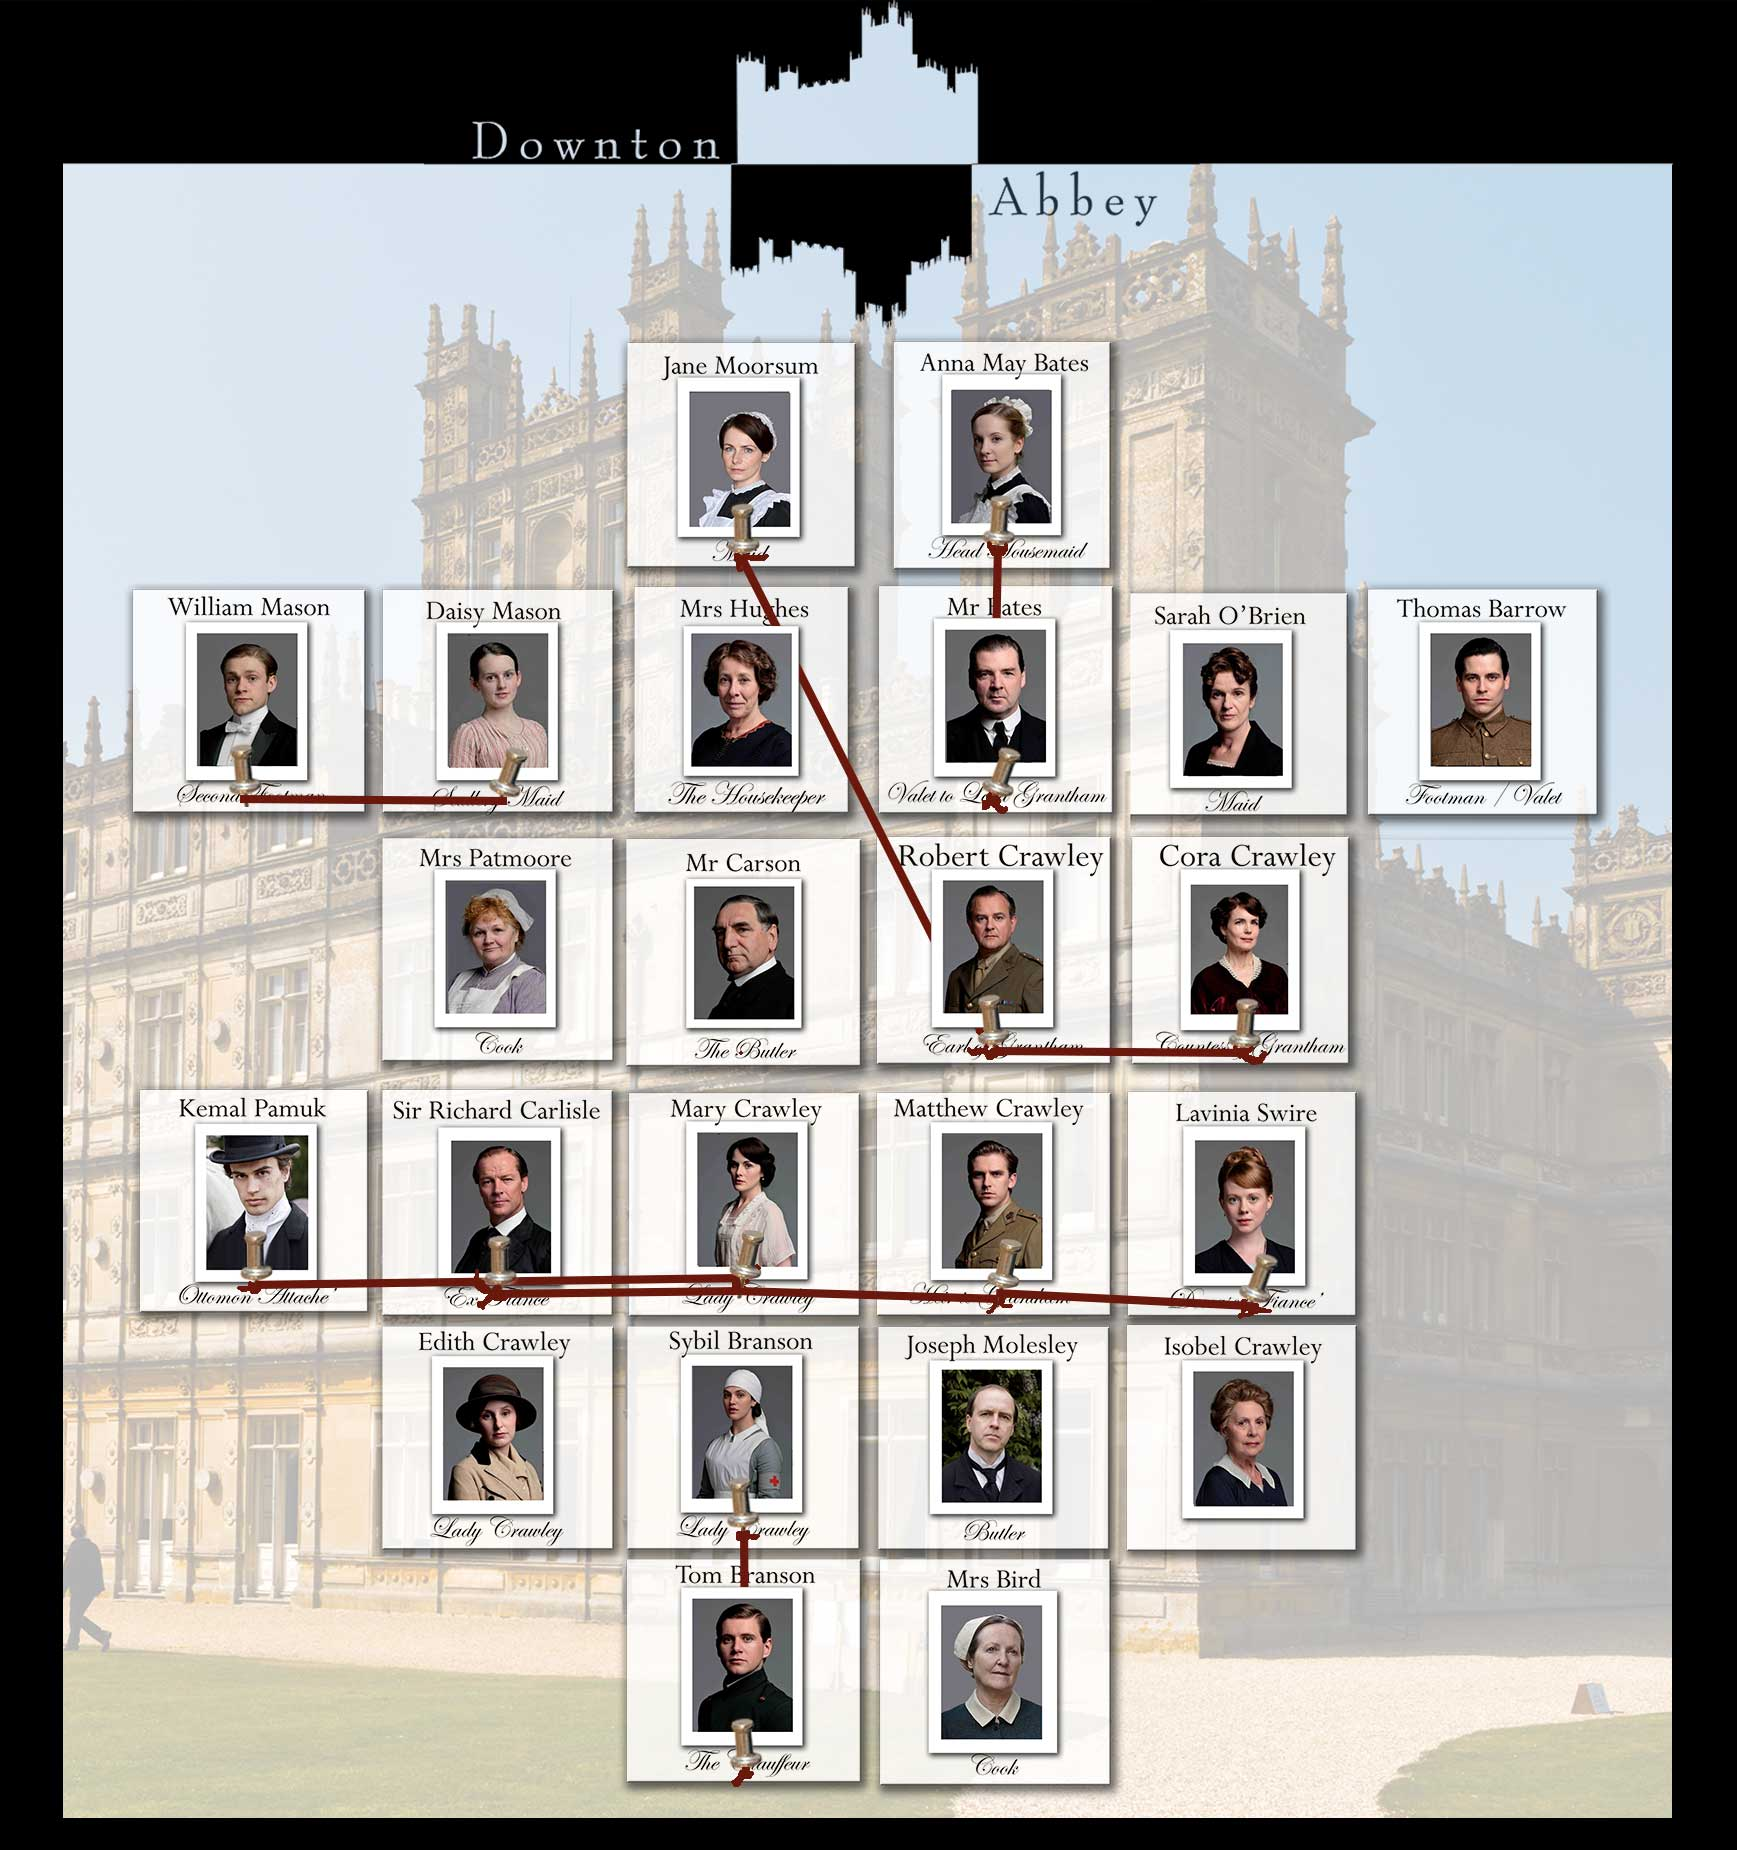 Downton Abbey Explained & Infographics